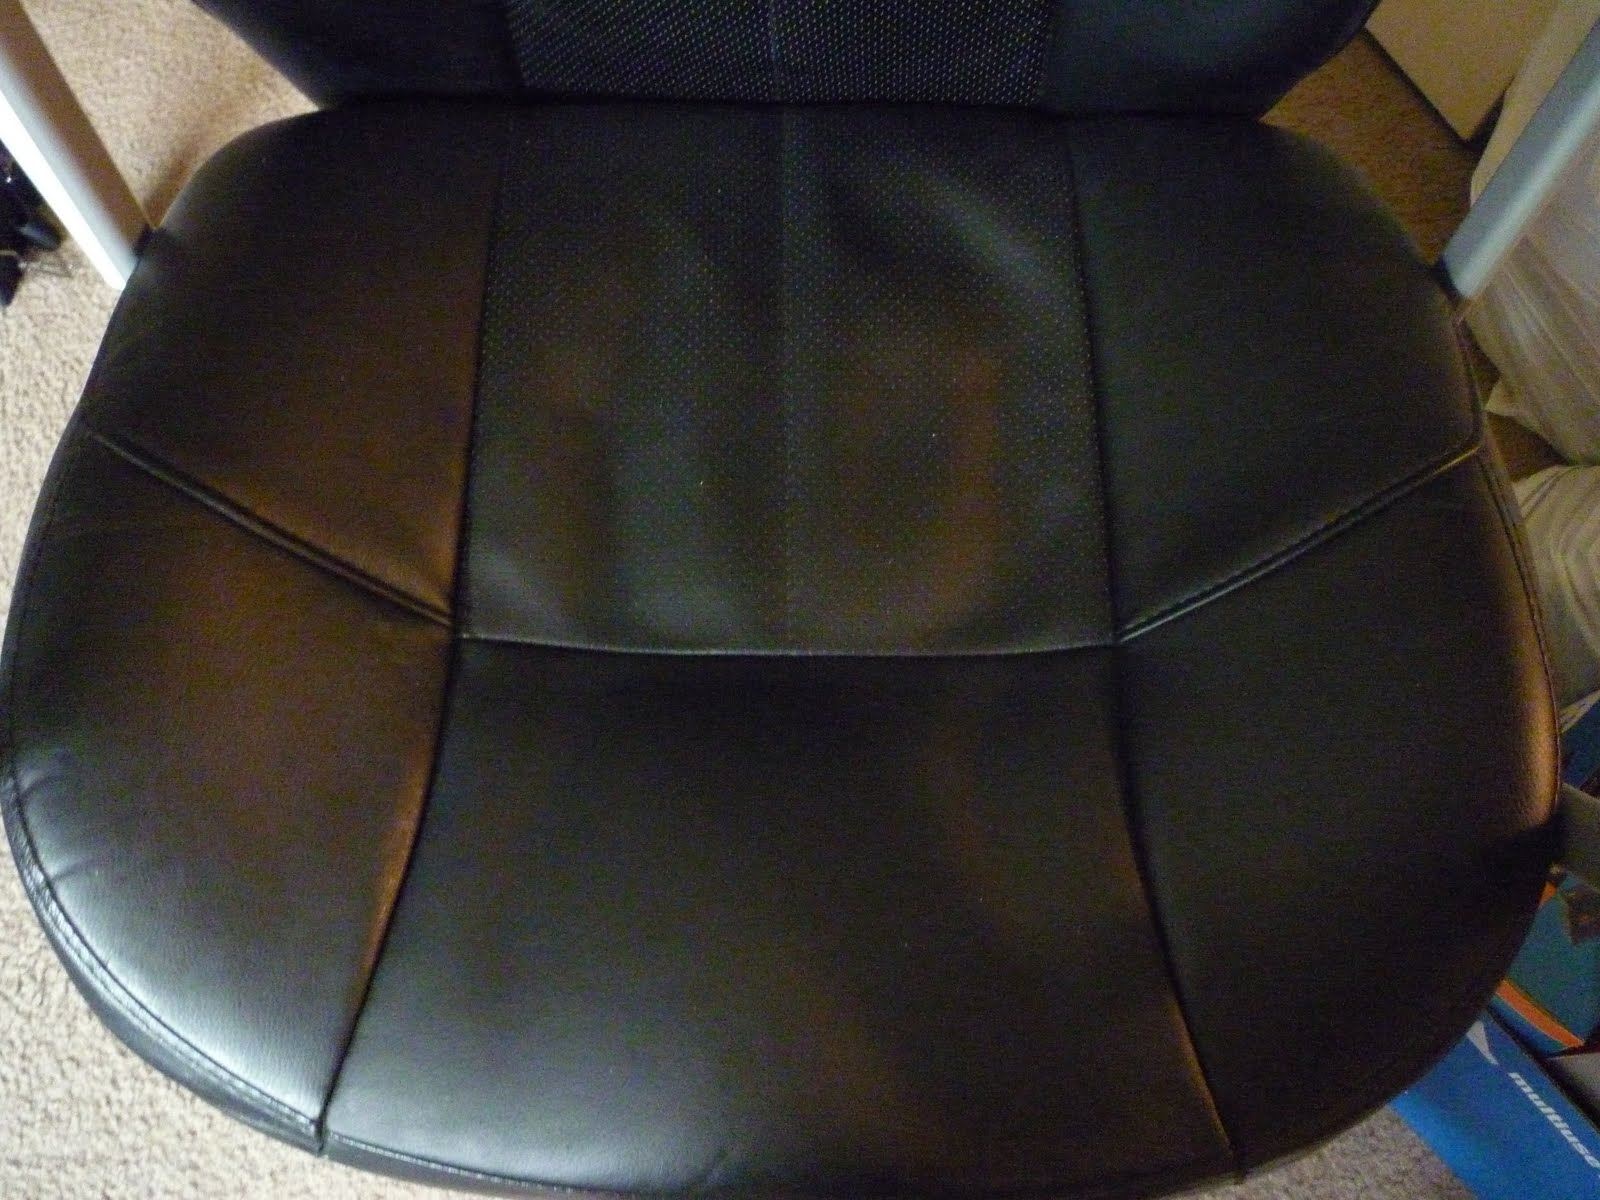 jeep desk chair covers for office chairs onlinegaragesale classic executive 50 00 retail 319 99